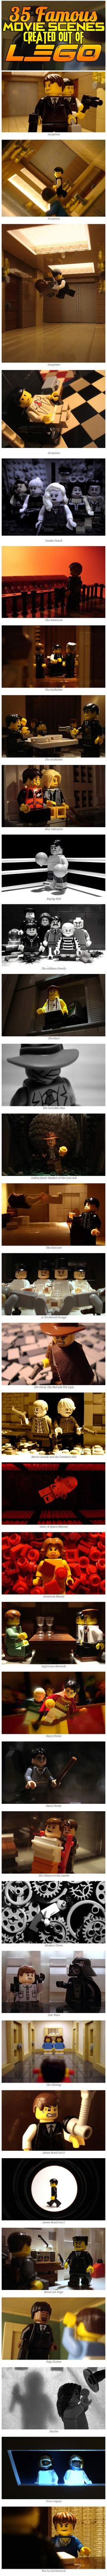 Movies recreated in LEGO…